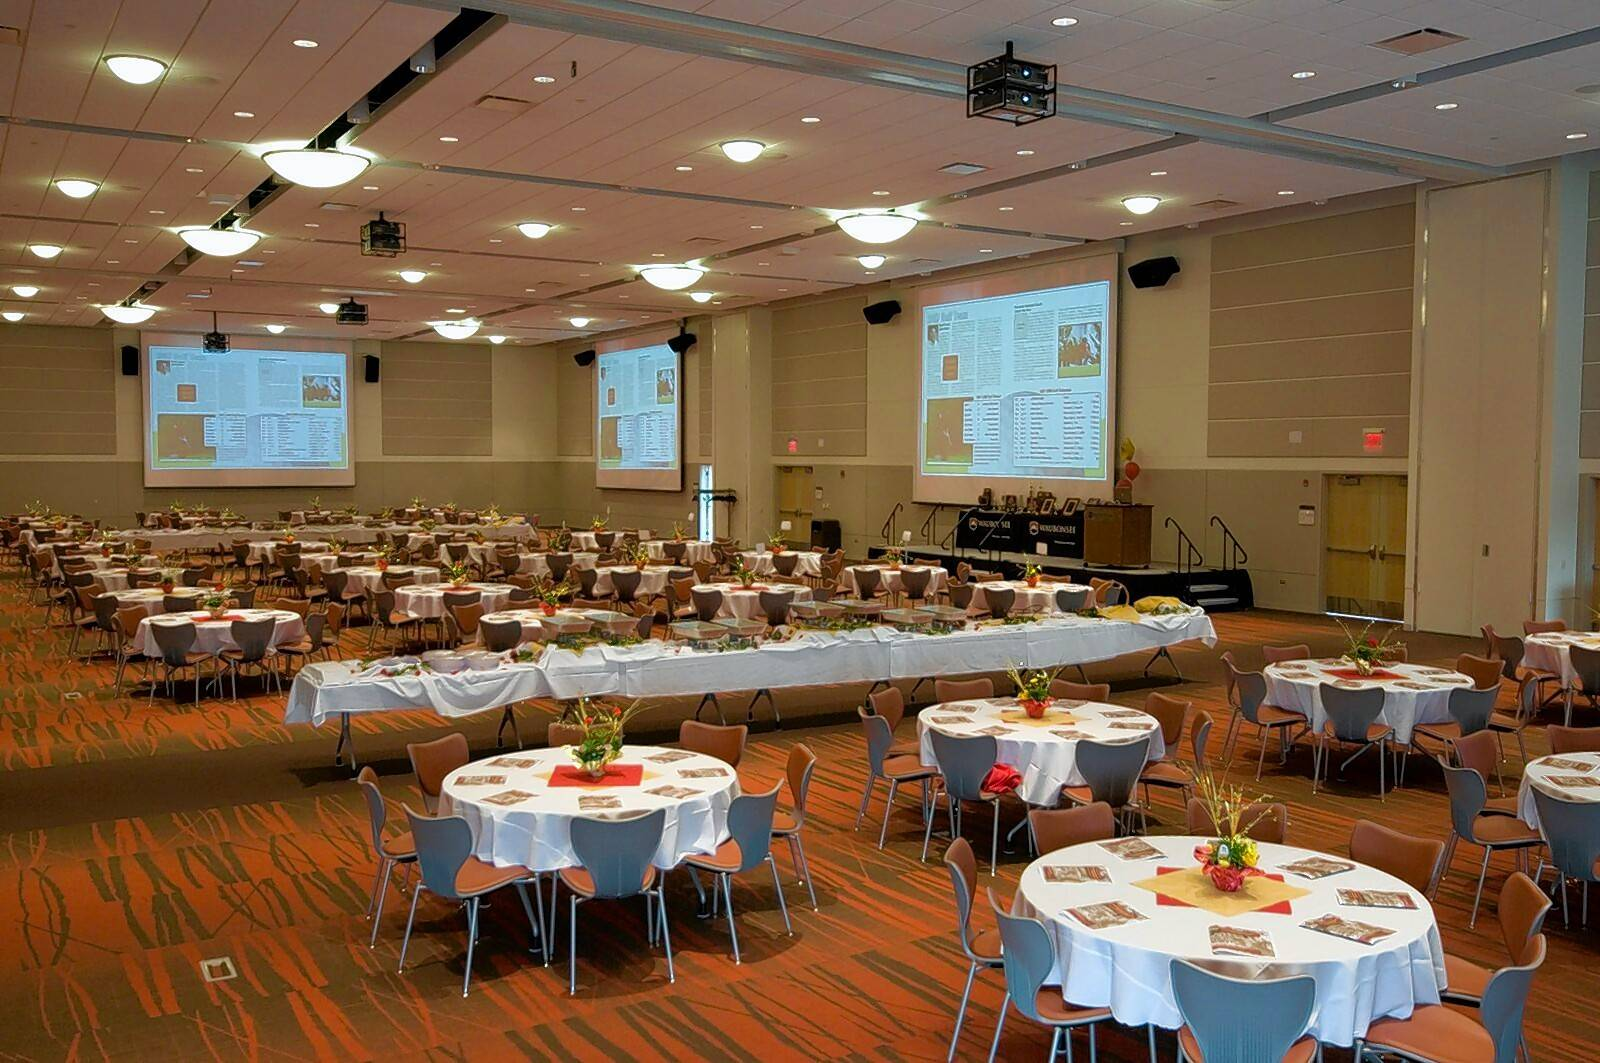 Waubonsee Community College houses more than 10,000 square feet of academic and professional event space.